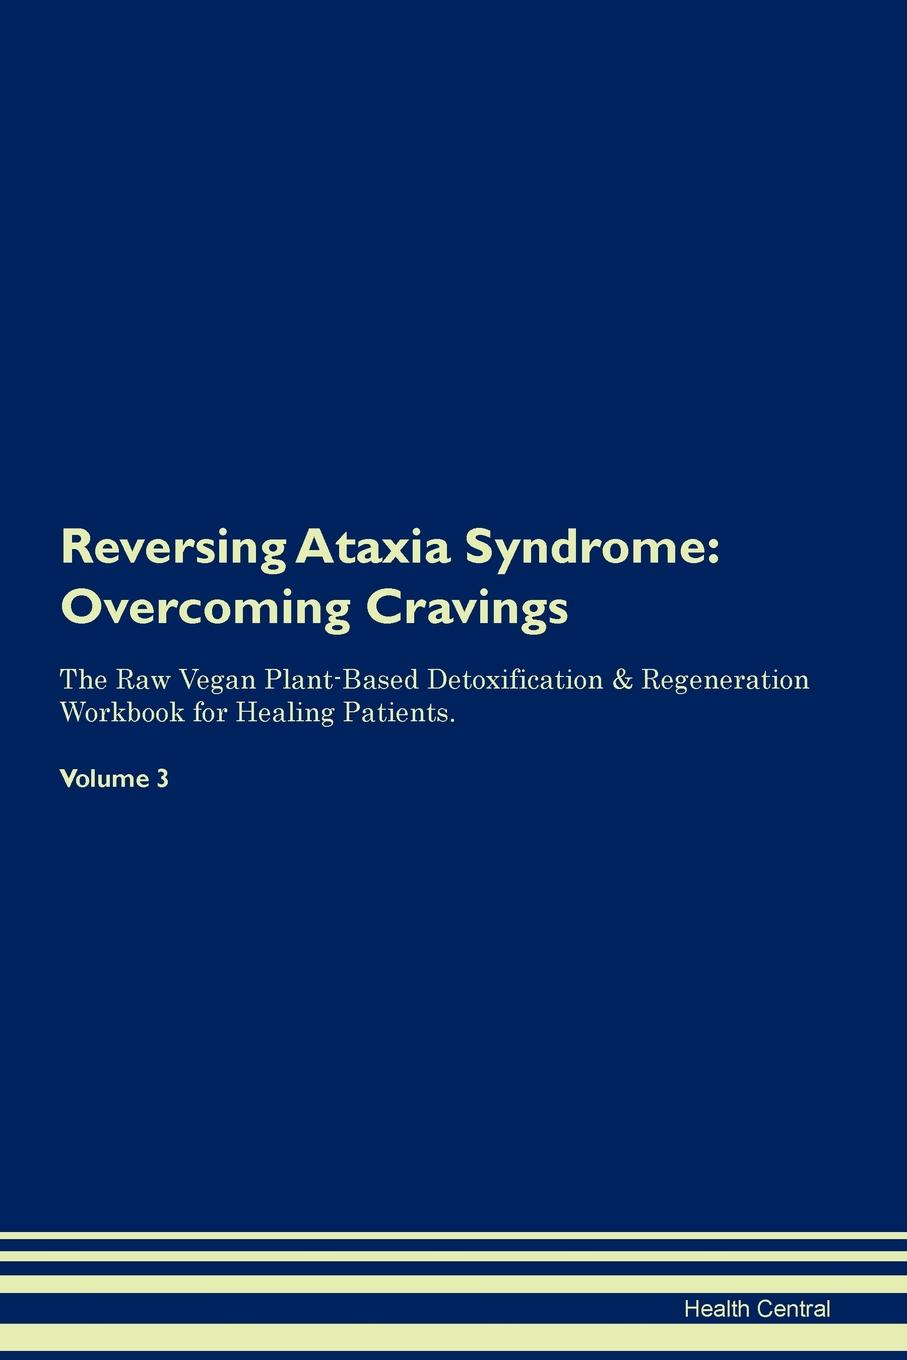 Фото - Health Central Reversing Ataxia Syndrome. Overcoming Cravings The Raw Vegan Plant-Based Detoxification & Regeneration Workbook for Healing Patients. Volume 3 health central reversing spinocerebellar ataxia overcoming cravings the raw vegan plant based detoxification